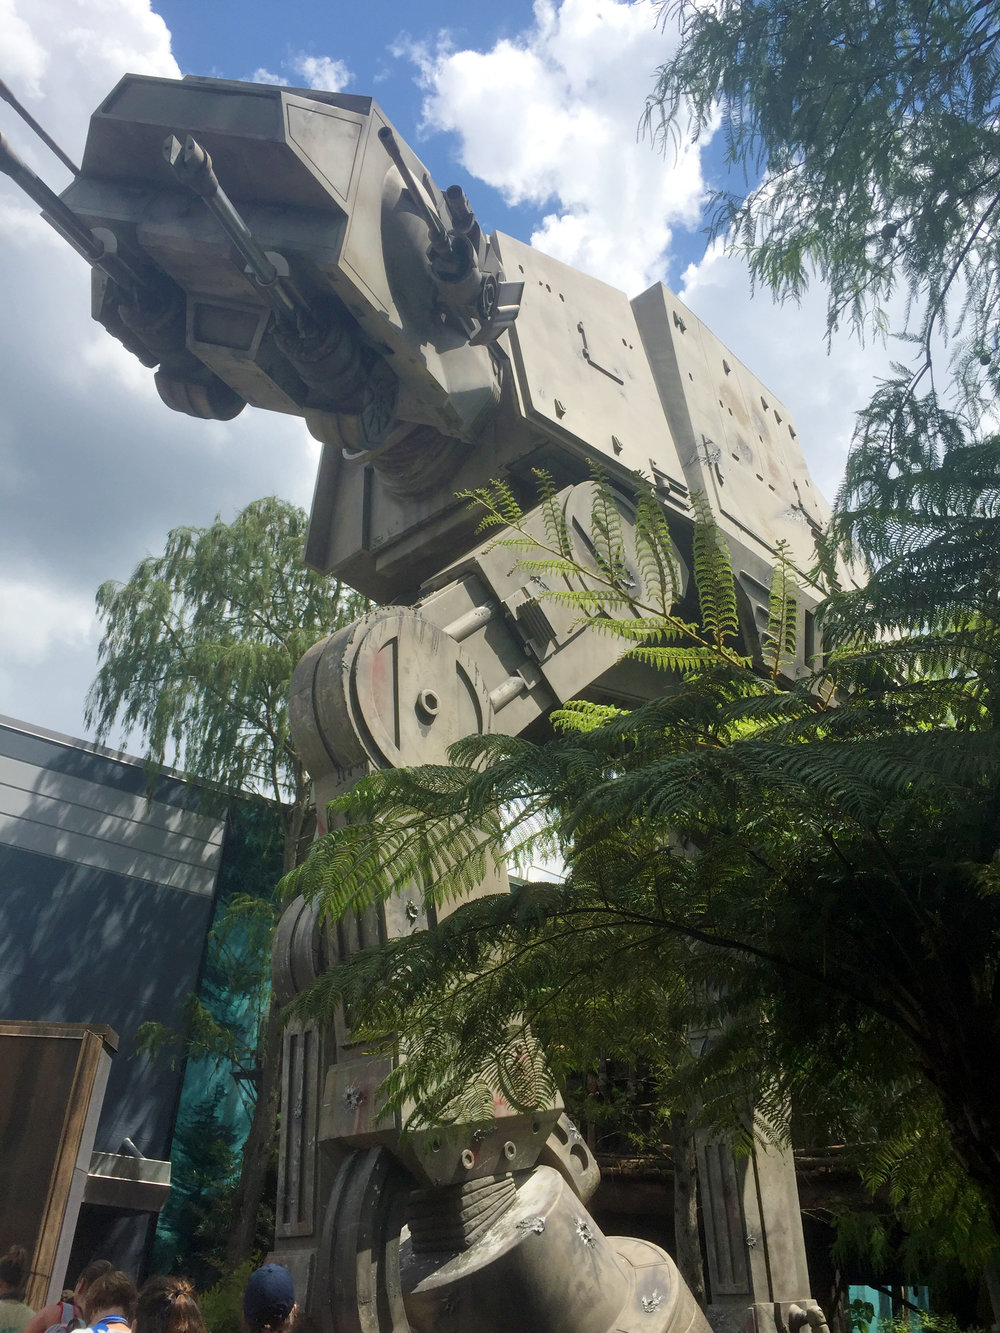 Star Tours continues to be a popular ride, so it's probably a safe choice for a Fastpass.